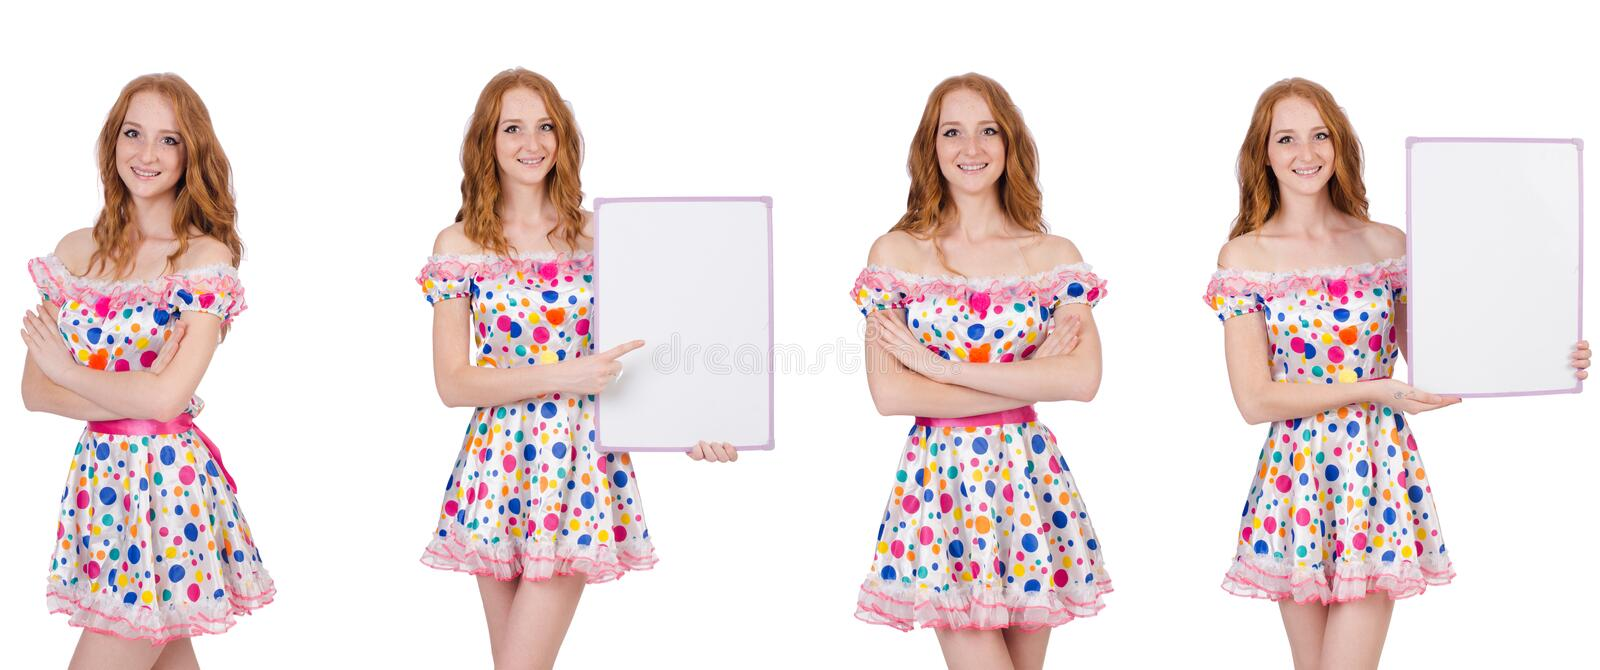 The young woman with blank poster isolated on white. Young woman with blank poster isolated on white royalty free stock image